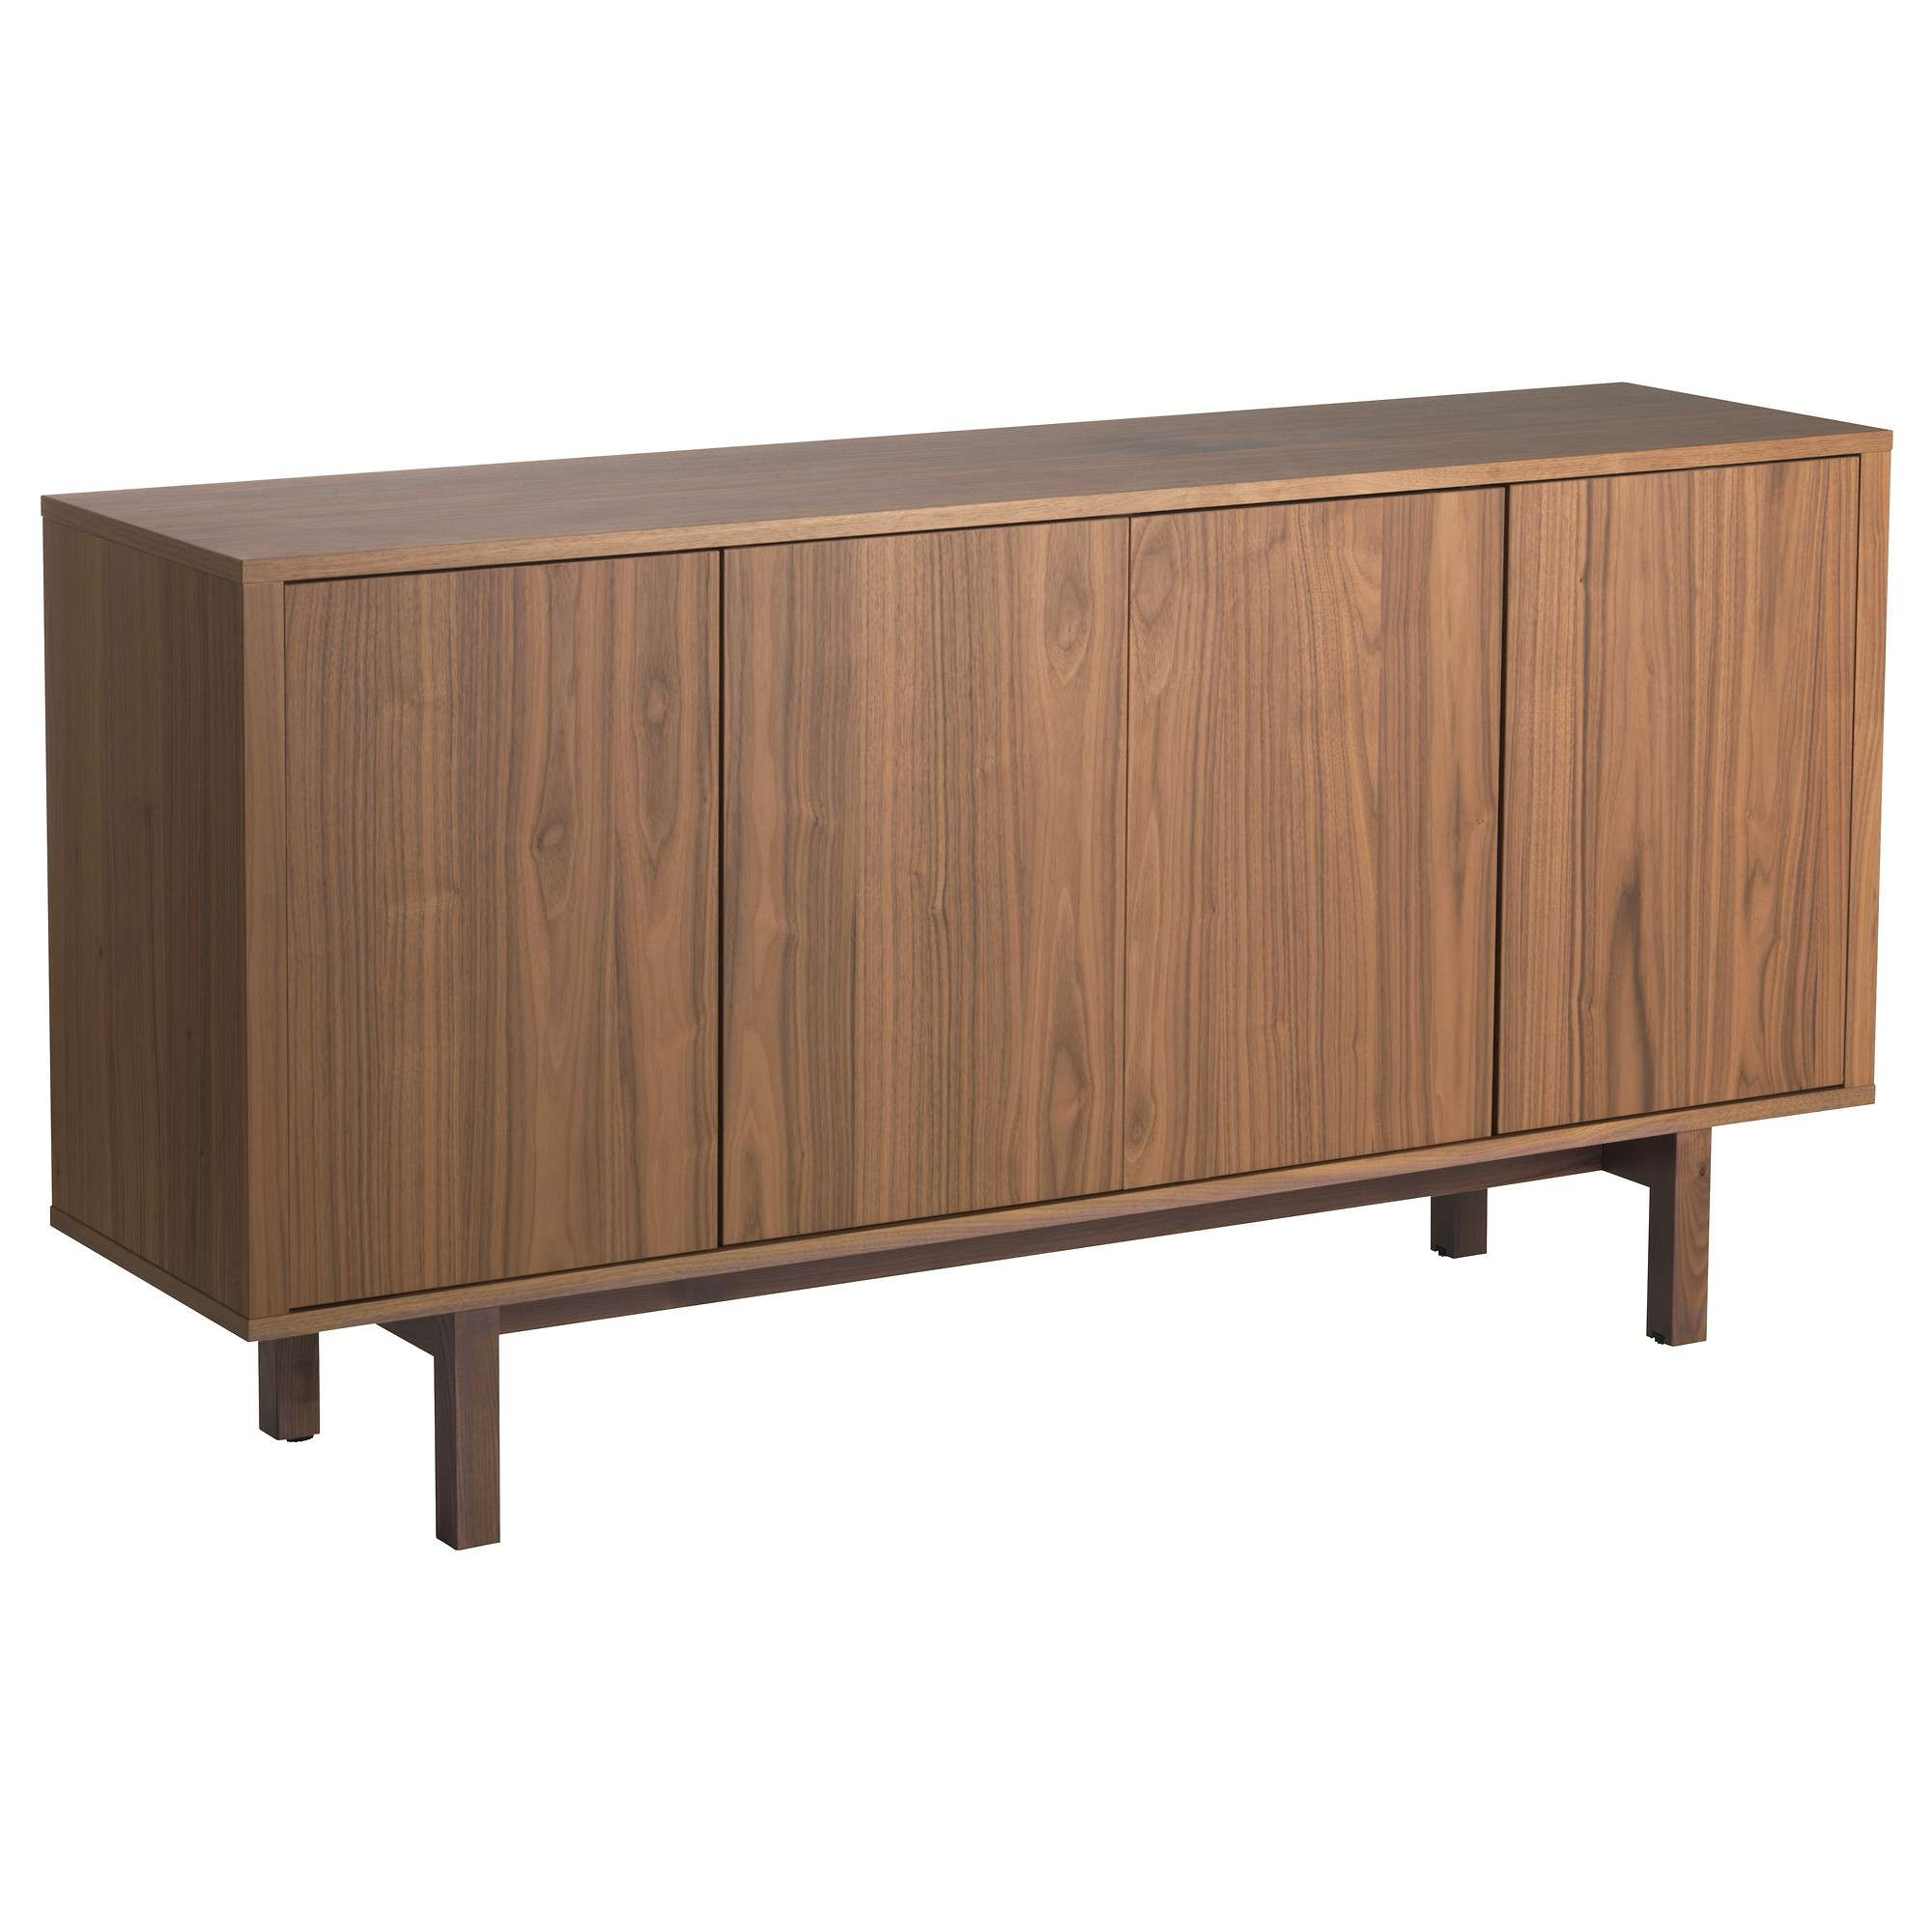 Stockholm Sideboard – Ikea Intended For Canada Ikea Sideboards (View 5 of 20)